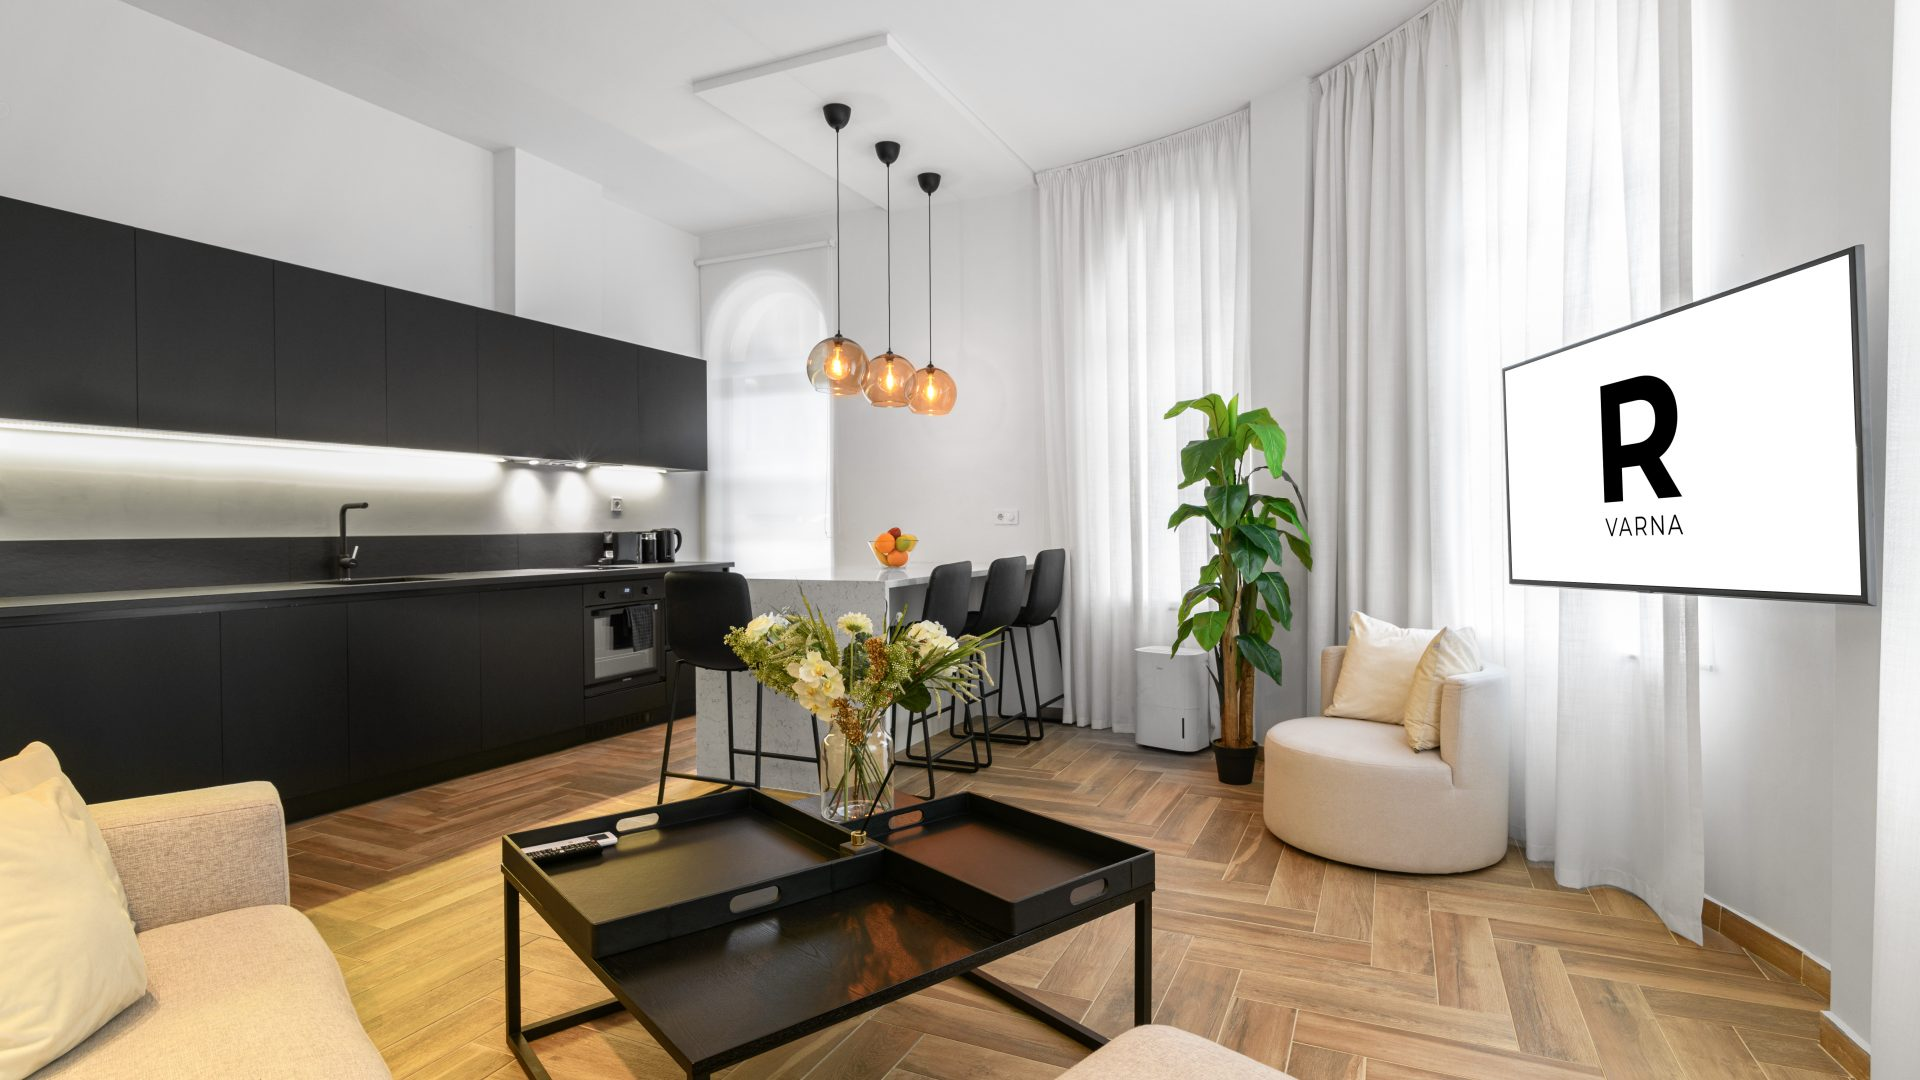 R-Varna Deluxe holiday apartments for rent